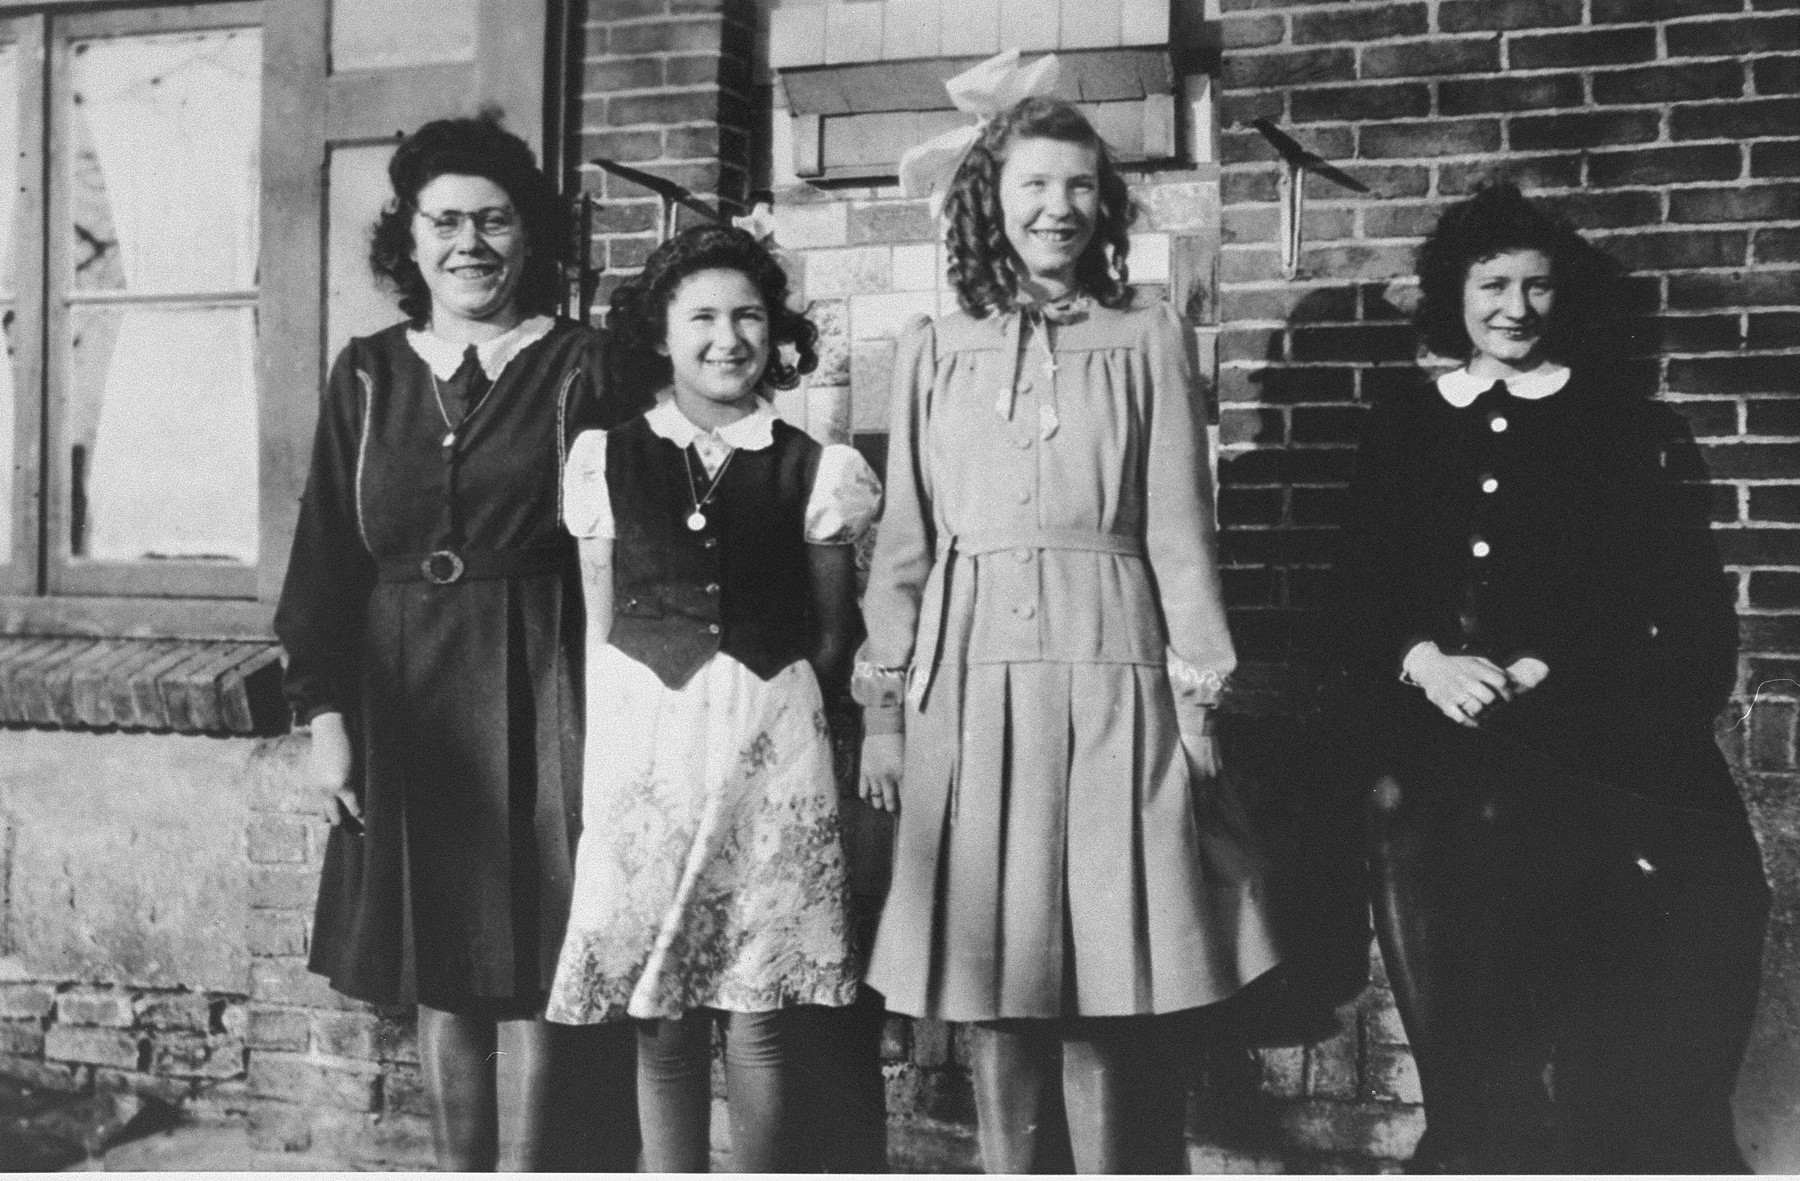 Marion Kaufmann visits the family who hid her during the war.   She made this last visit before her immigration to the United States. From left to right are: Marie Beelen, Marion Kaufmann (who was hidden under the name Renie Beelen), Rie Beelen, and Grada Beelen.